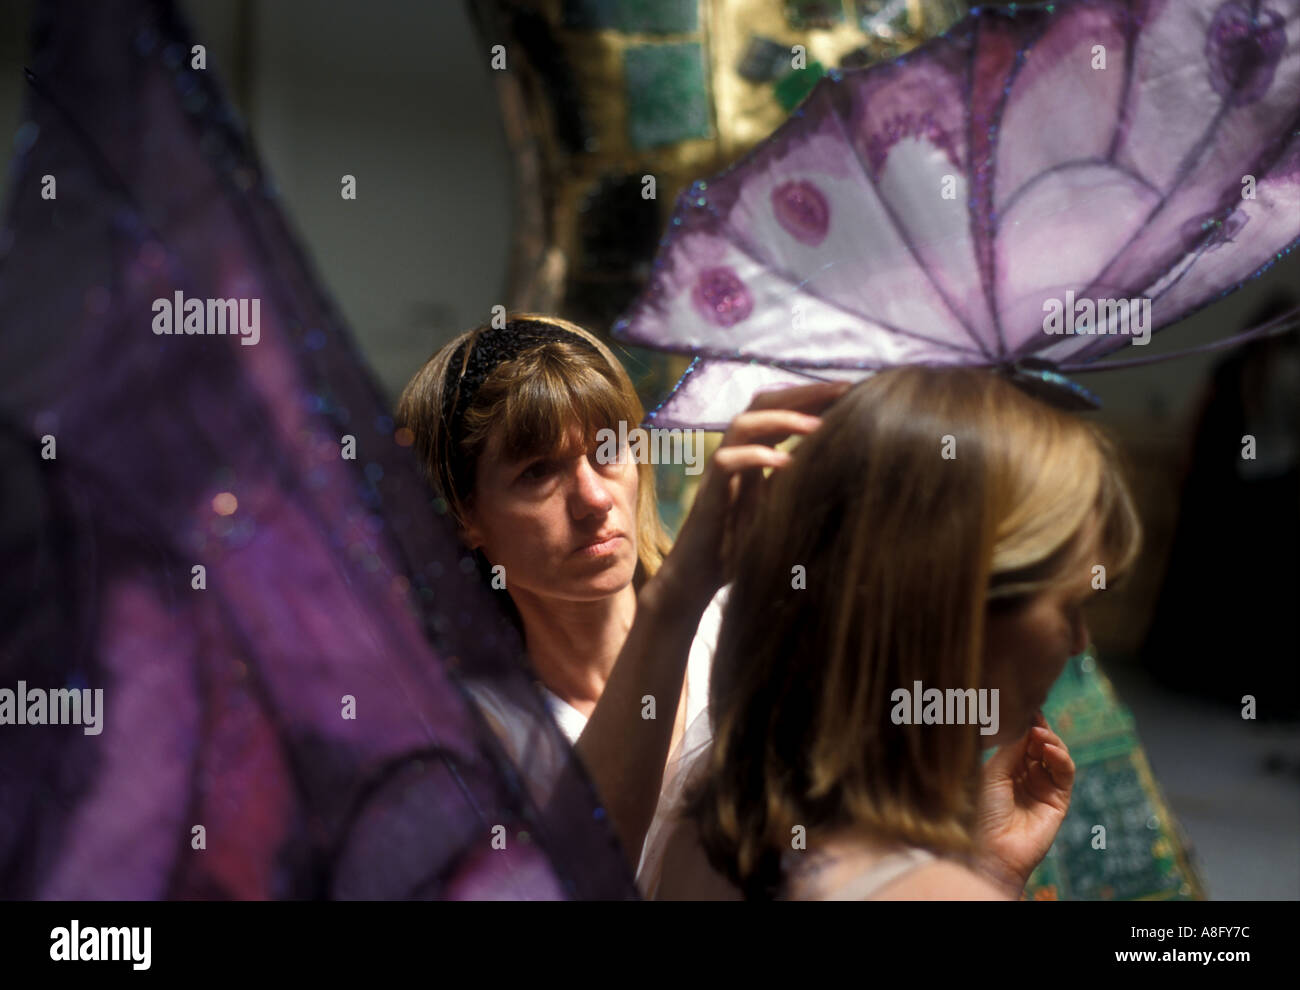 Theatre Costume Designer High Resolution Stock Photography And Images Alamy